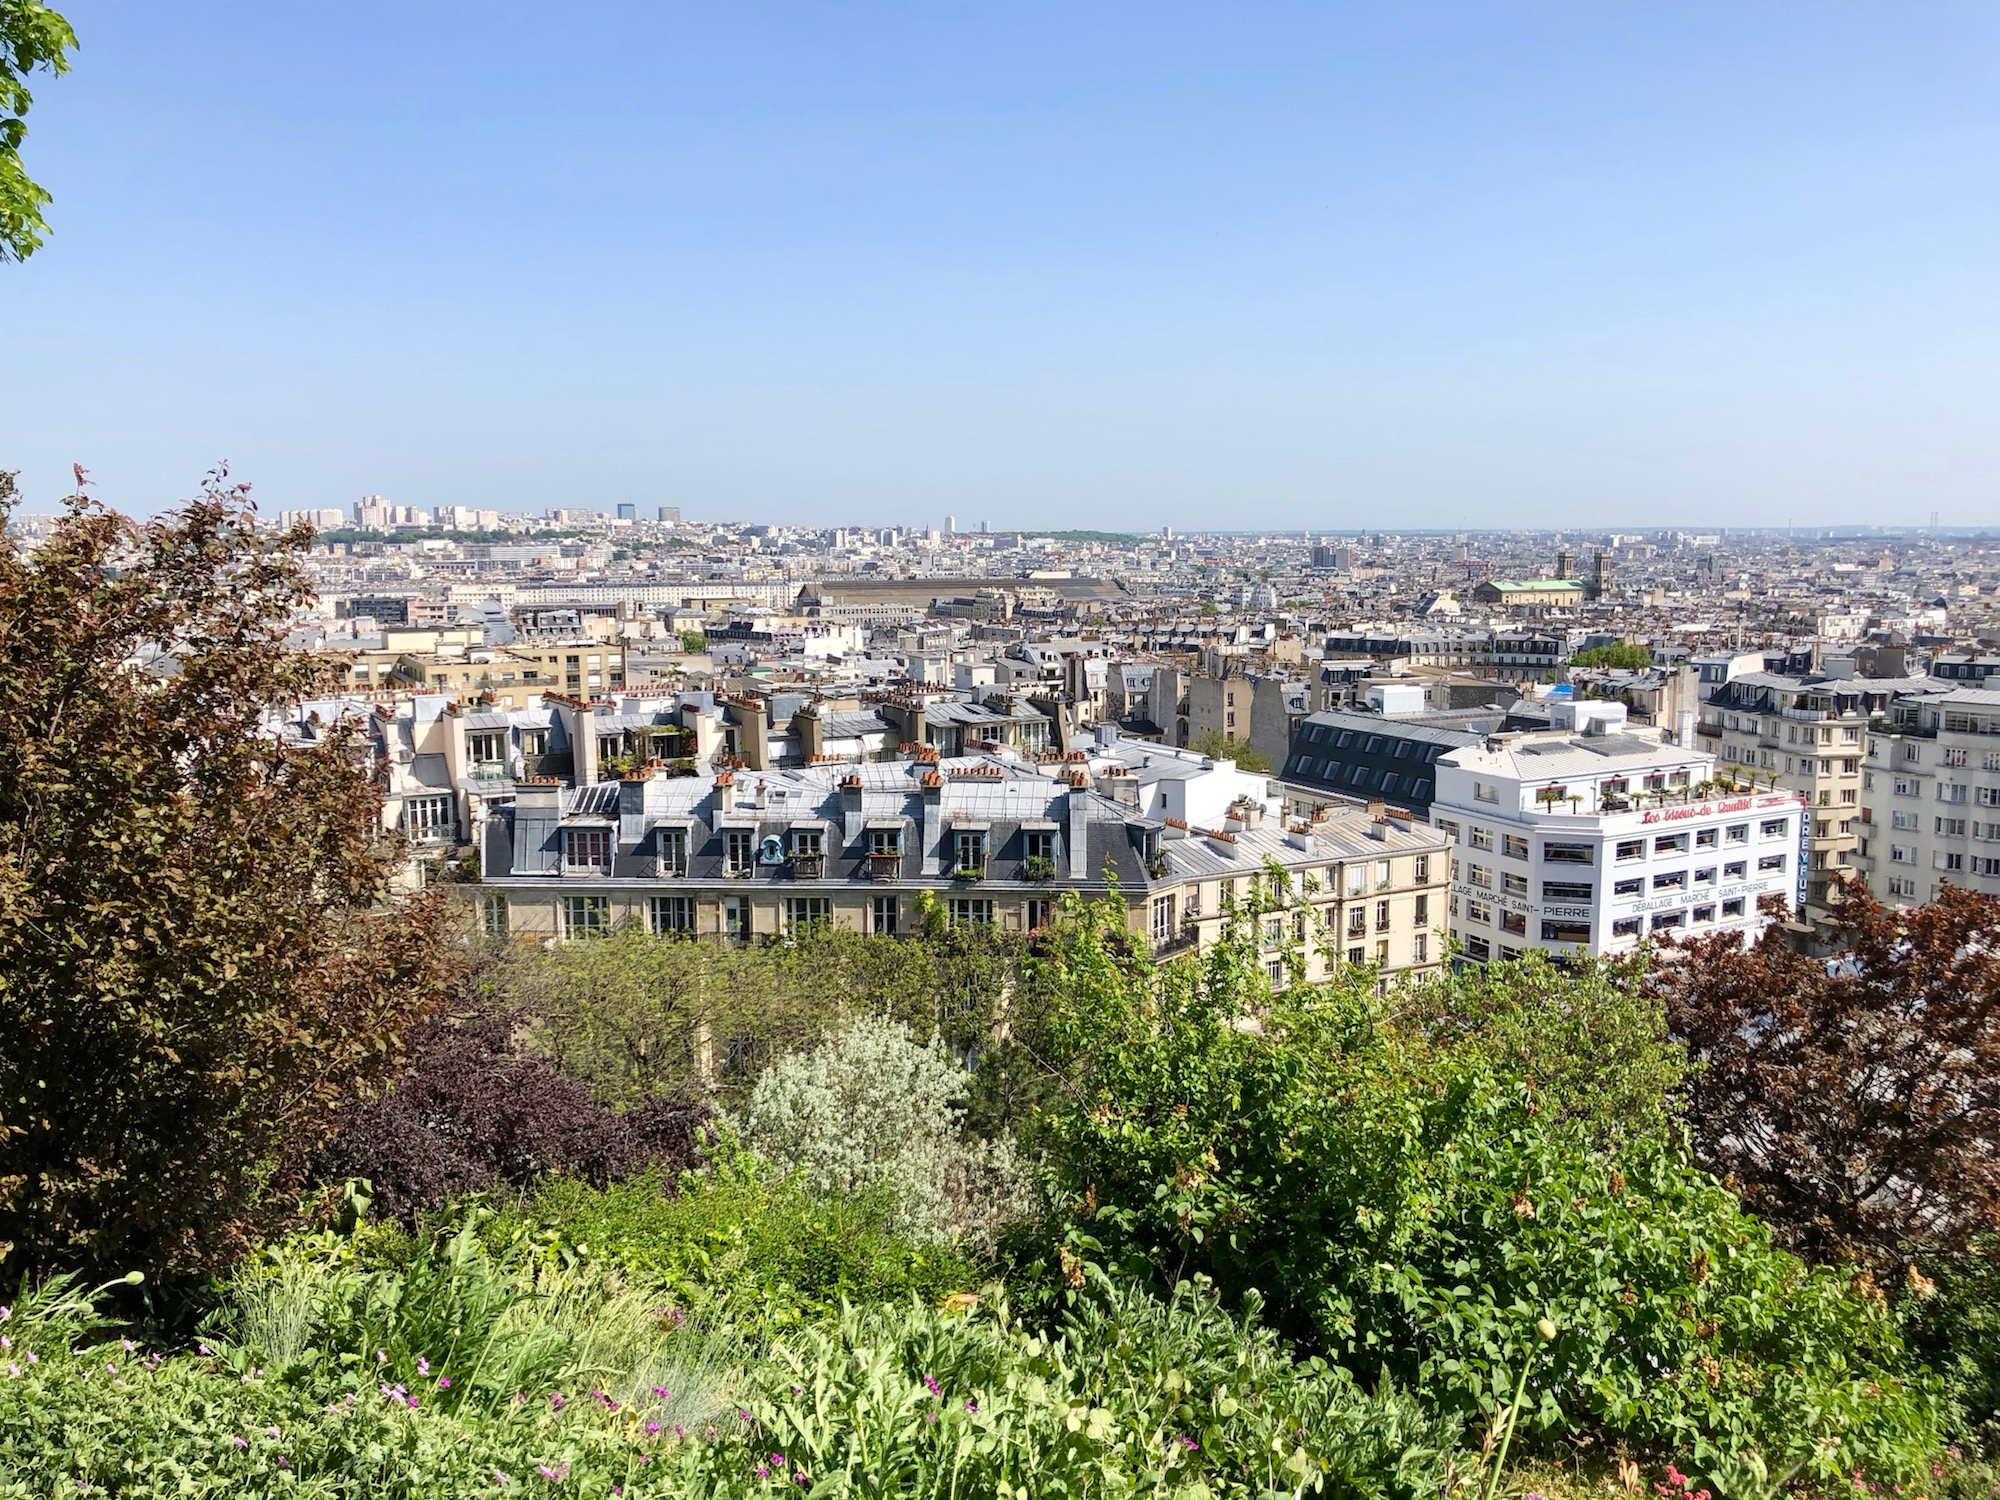 Learning French in Paris makes it easier to discover the best spots like this view point from which you can see the Paris rooftops stretch all the way to the horizon.